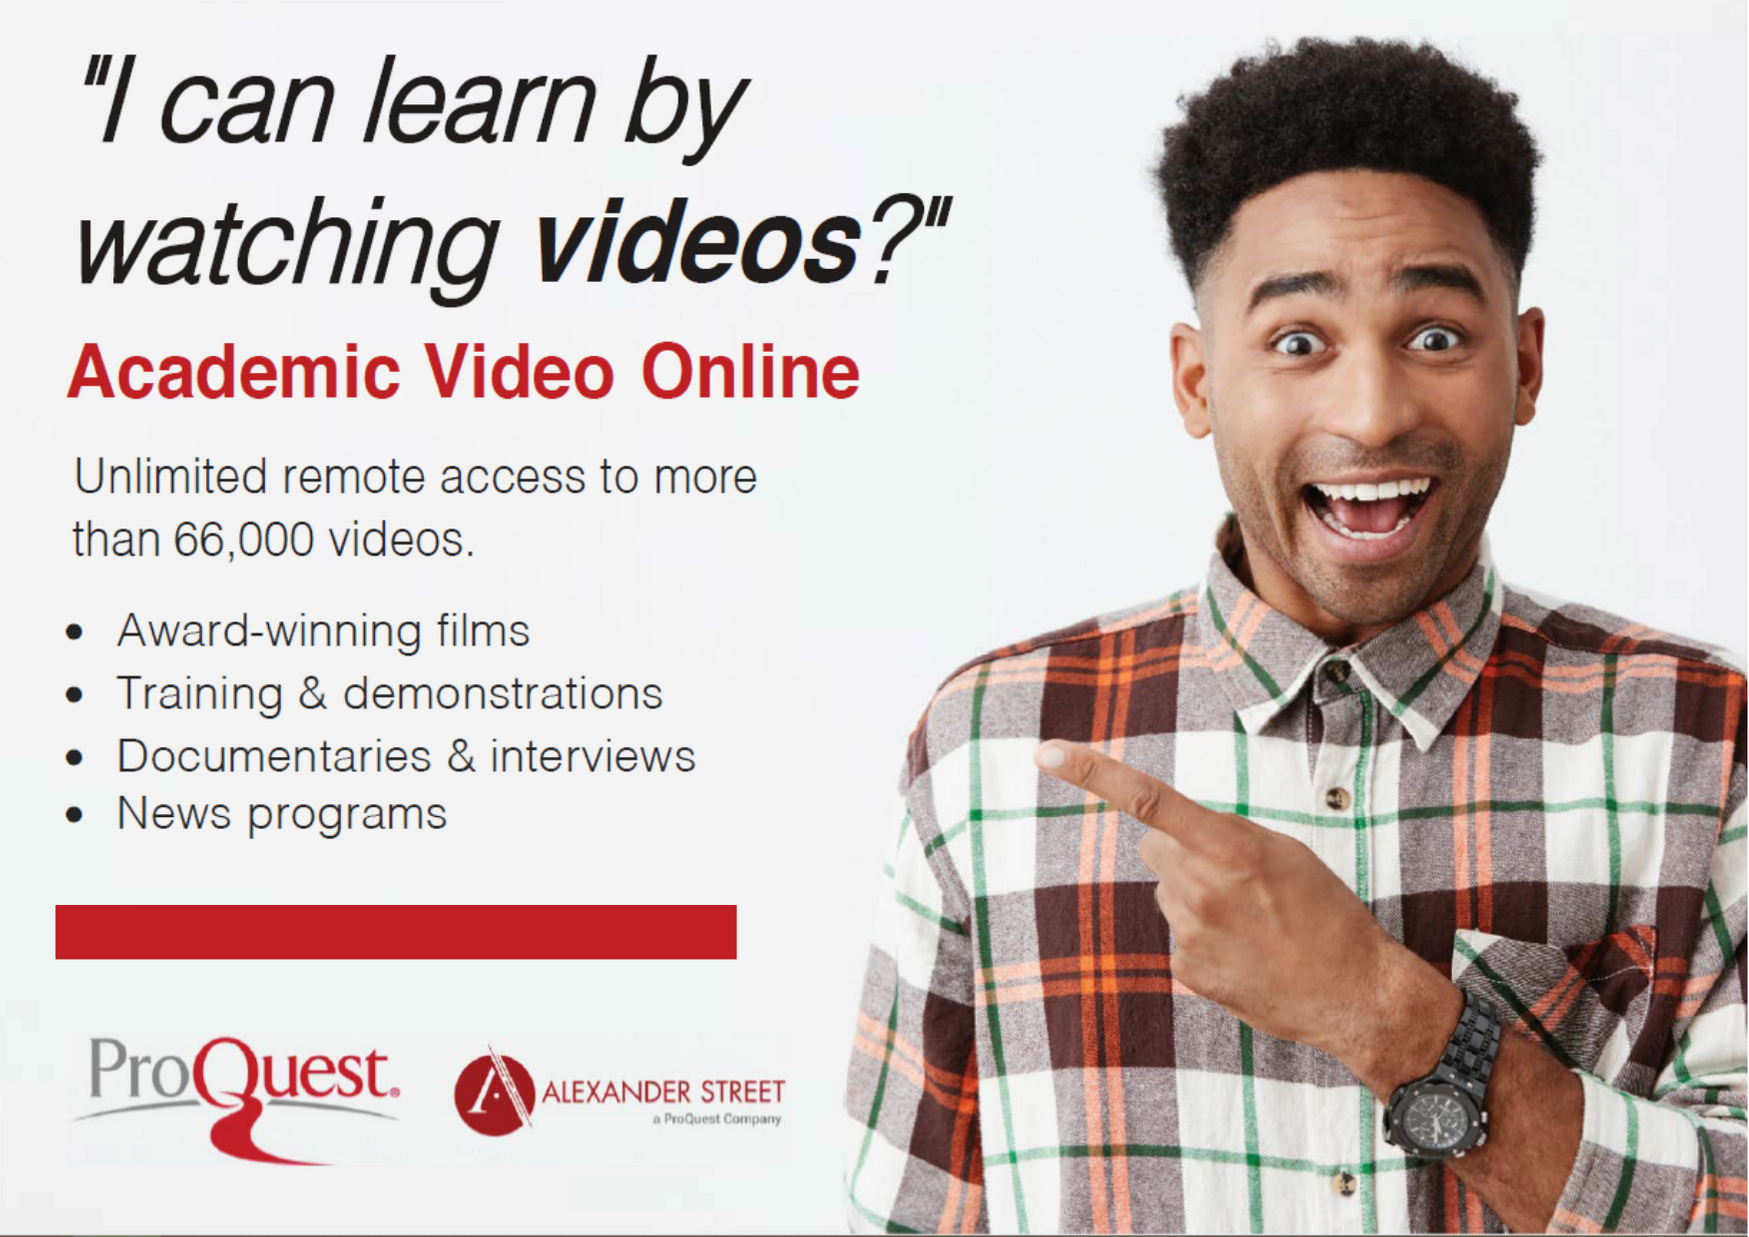 I can learn by watching videos? Academic Video Online Unlimited access to more than 66,000 videos.